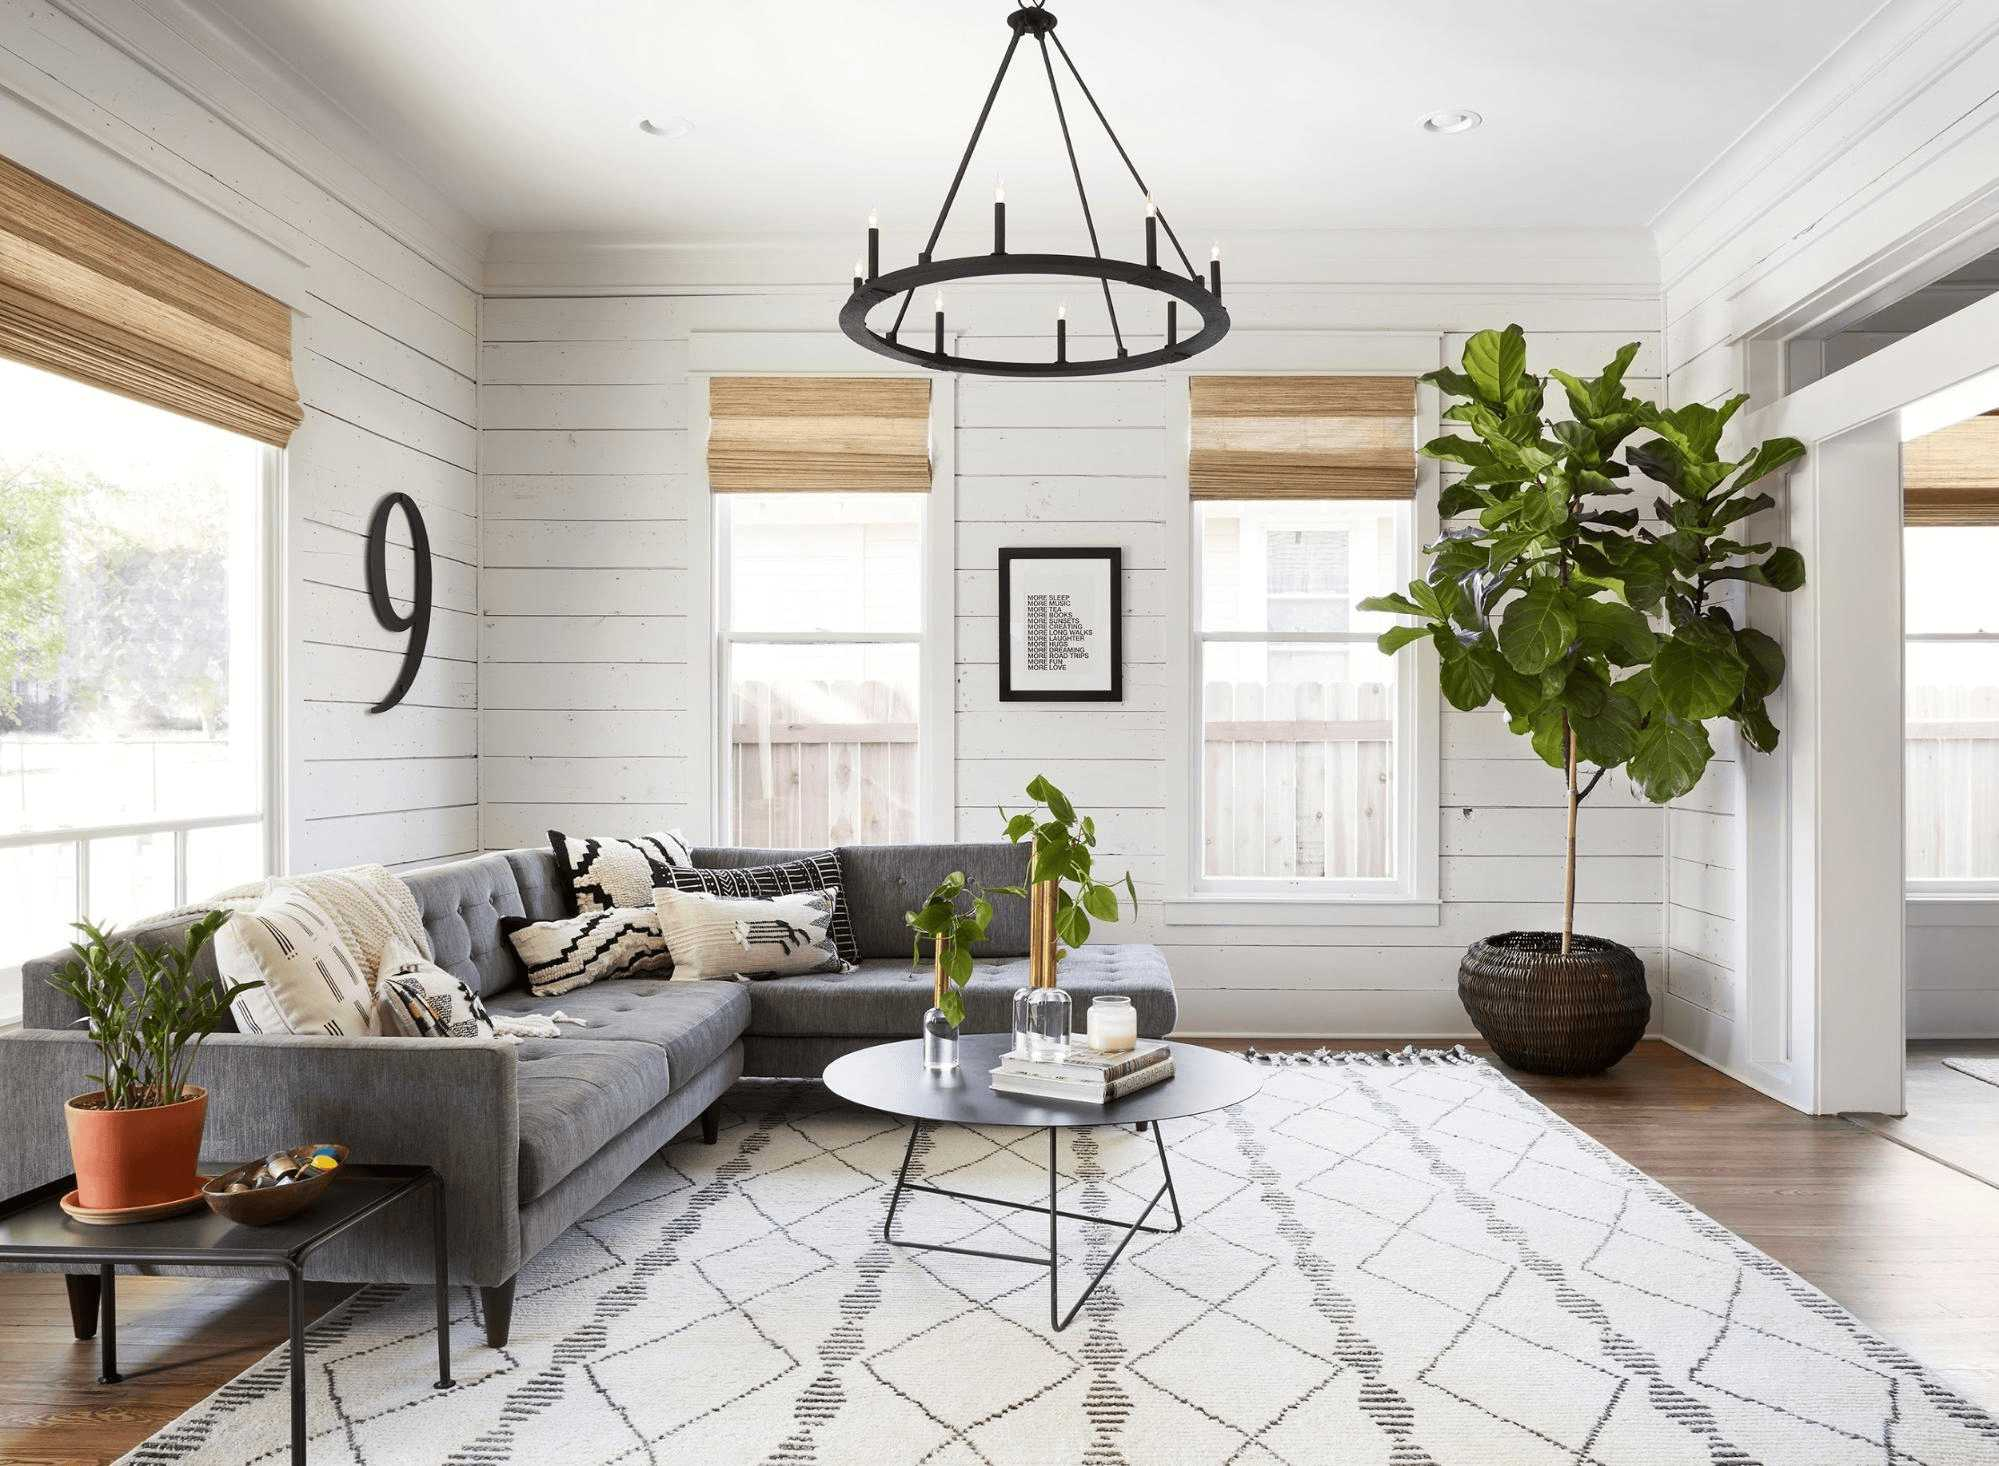 this-is-a-farmhouse-liiving-room-with-Nature-Inspired-Aesthetics-and-reclaimed-wood-with-plants1